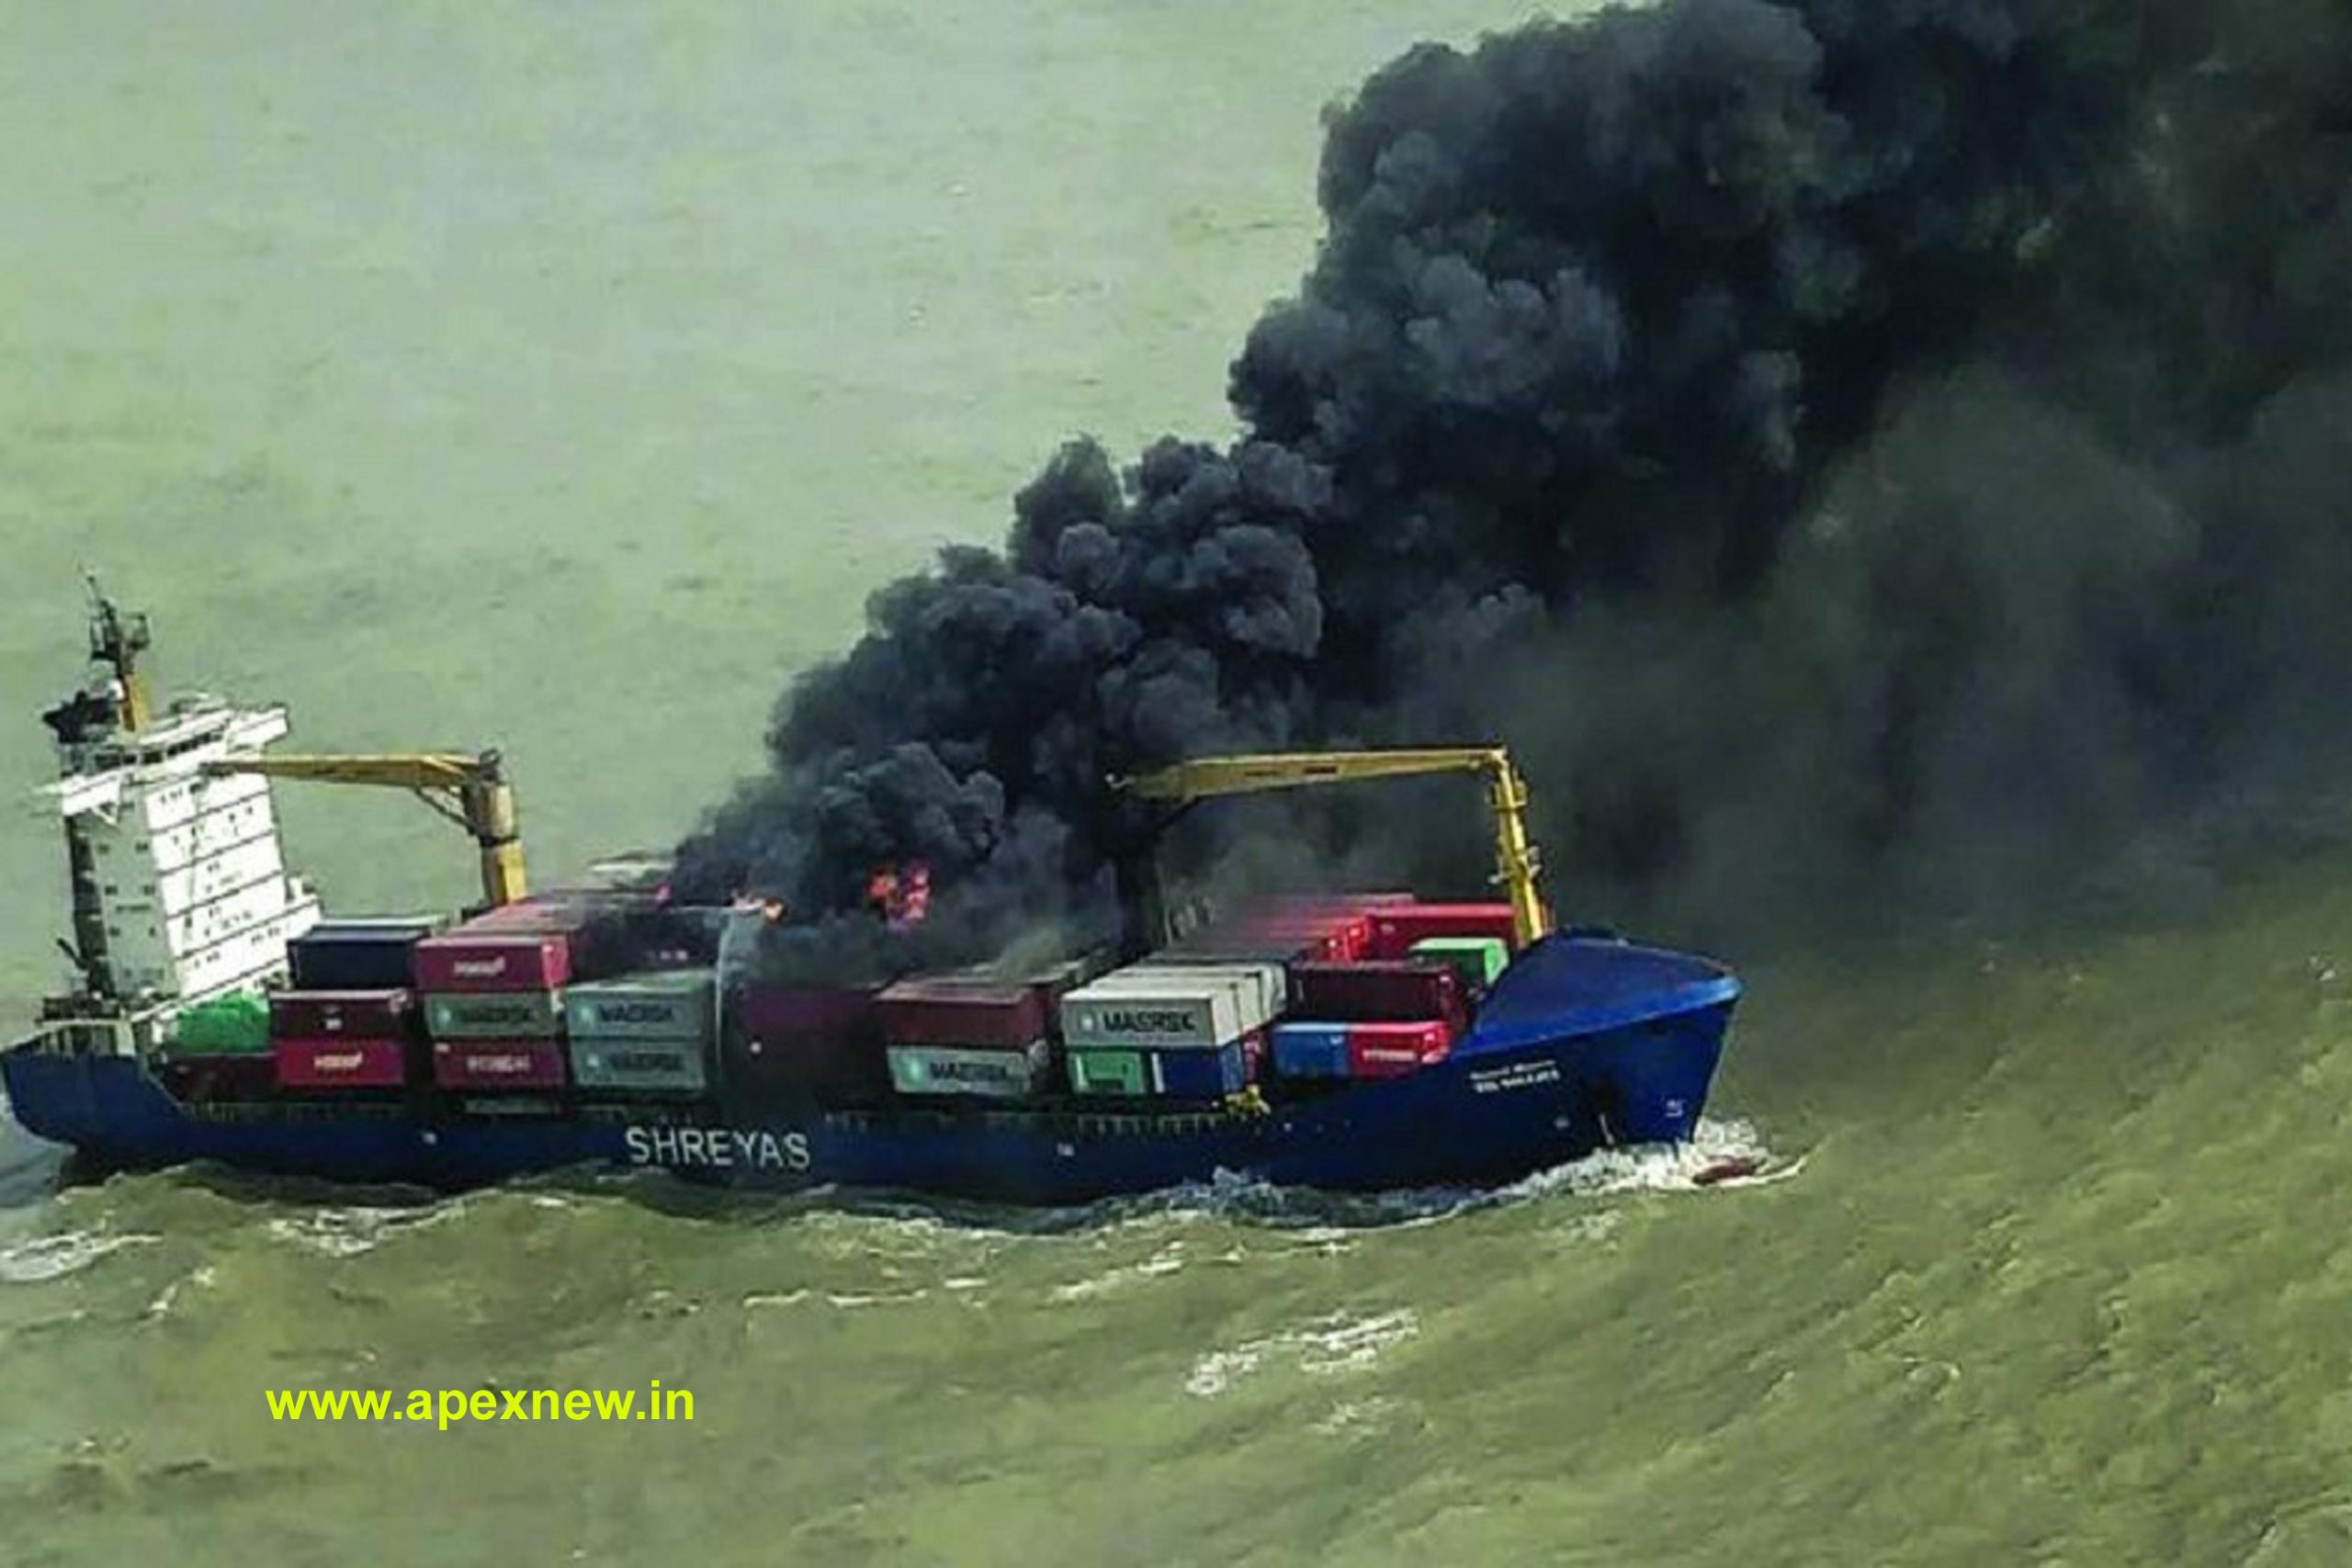 Terrible fire on a ship in the Bay of Bengal